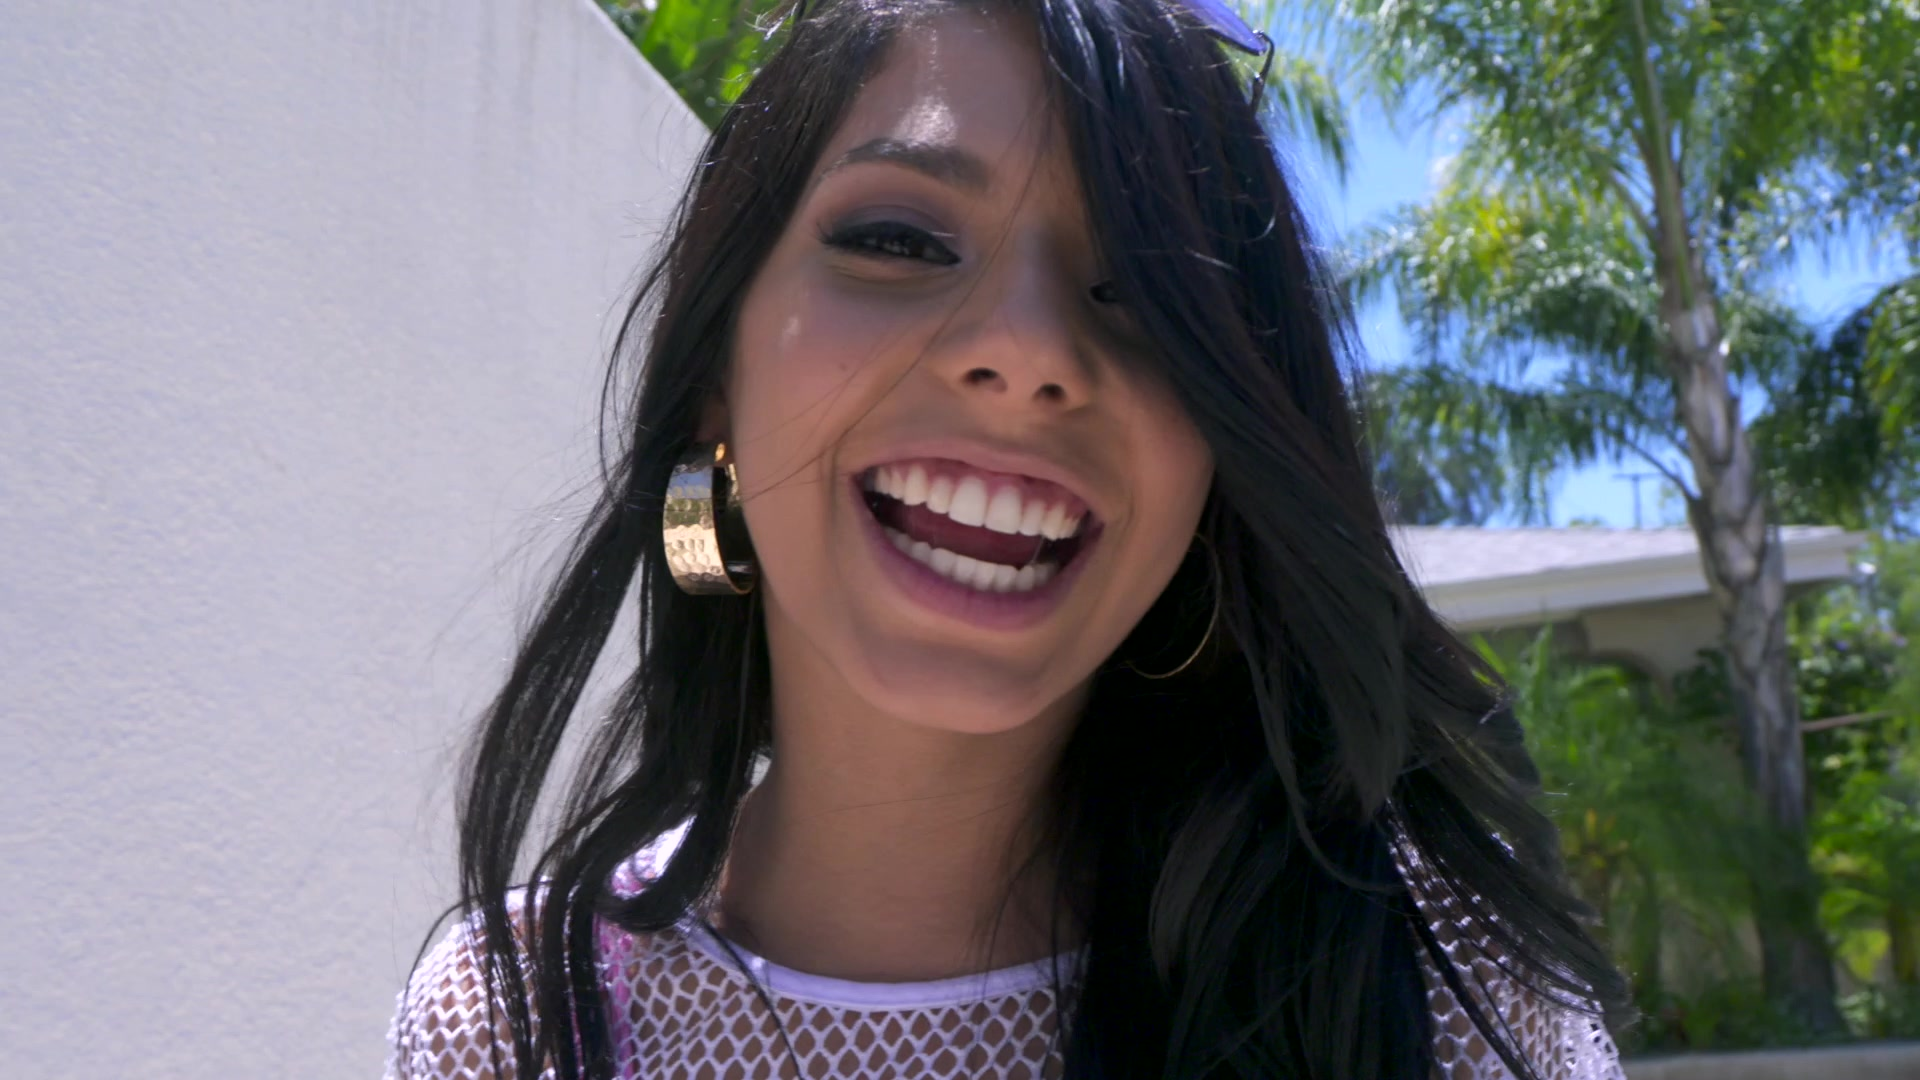 Scene with Gina Valentina - image 4 out of 20